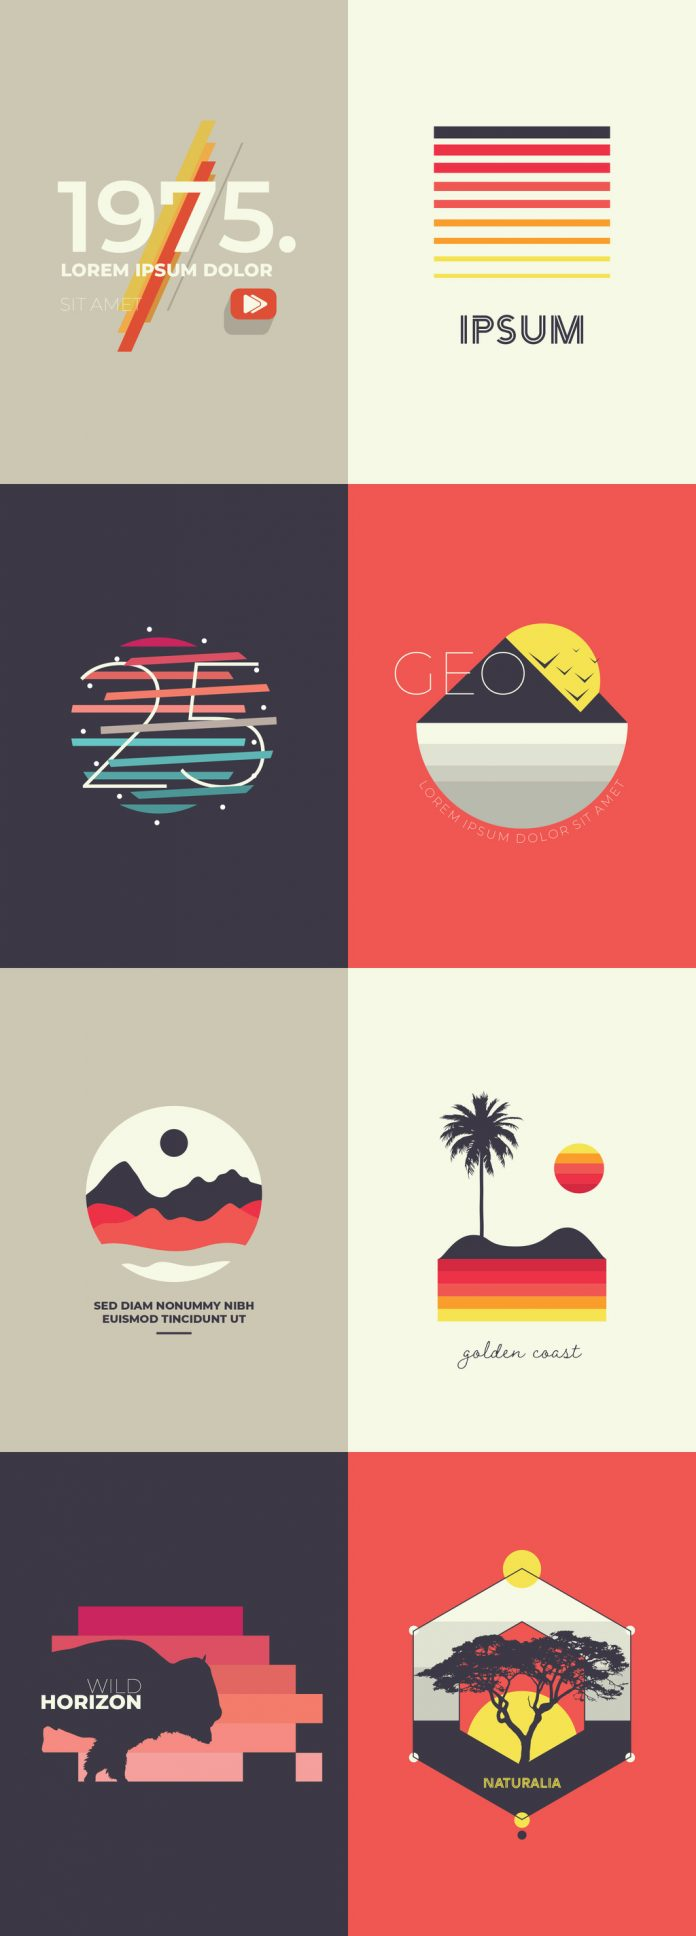 Multicolored Icon Set with Outdoor Imagery by Medialoot